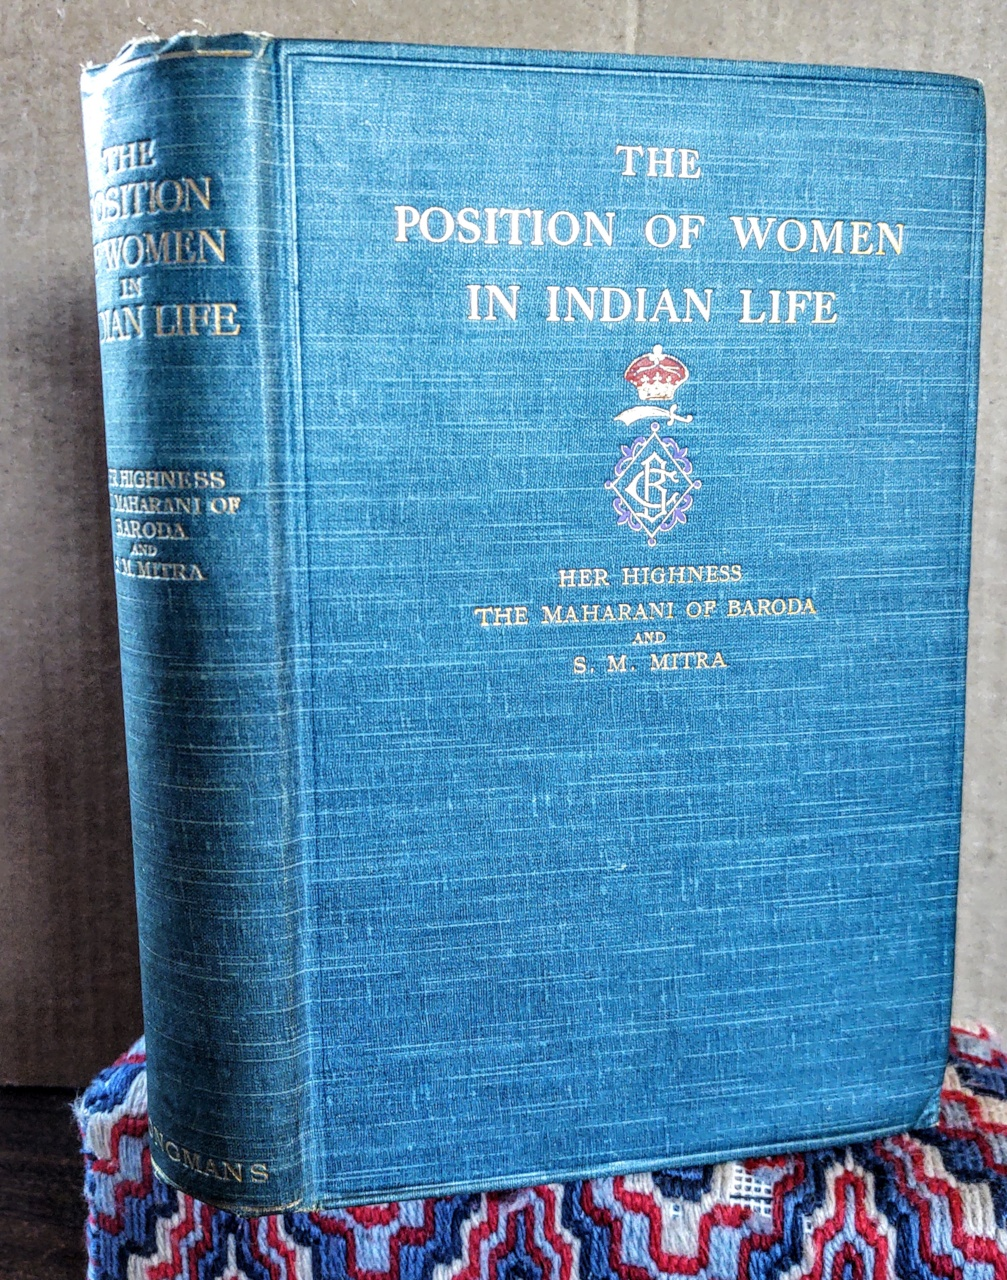 The Position of Women in Indian Life, Her Highness The Maharani Of Baroda & S. M. Mitra